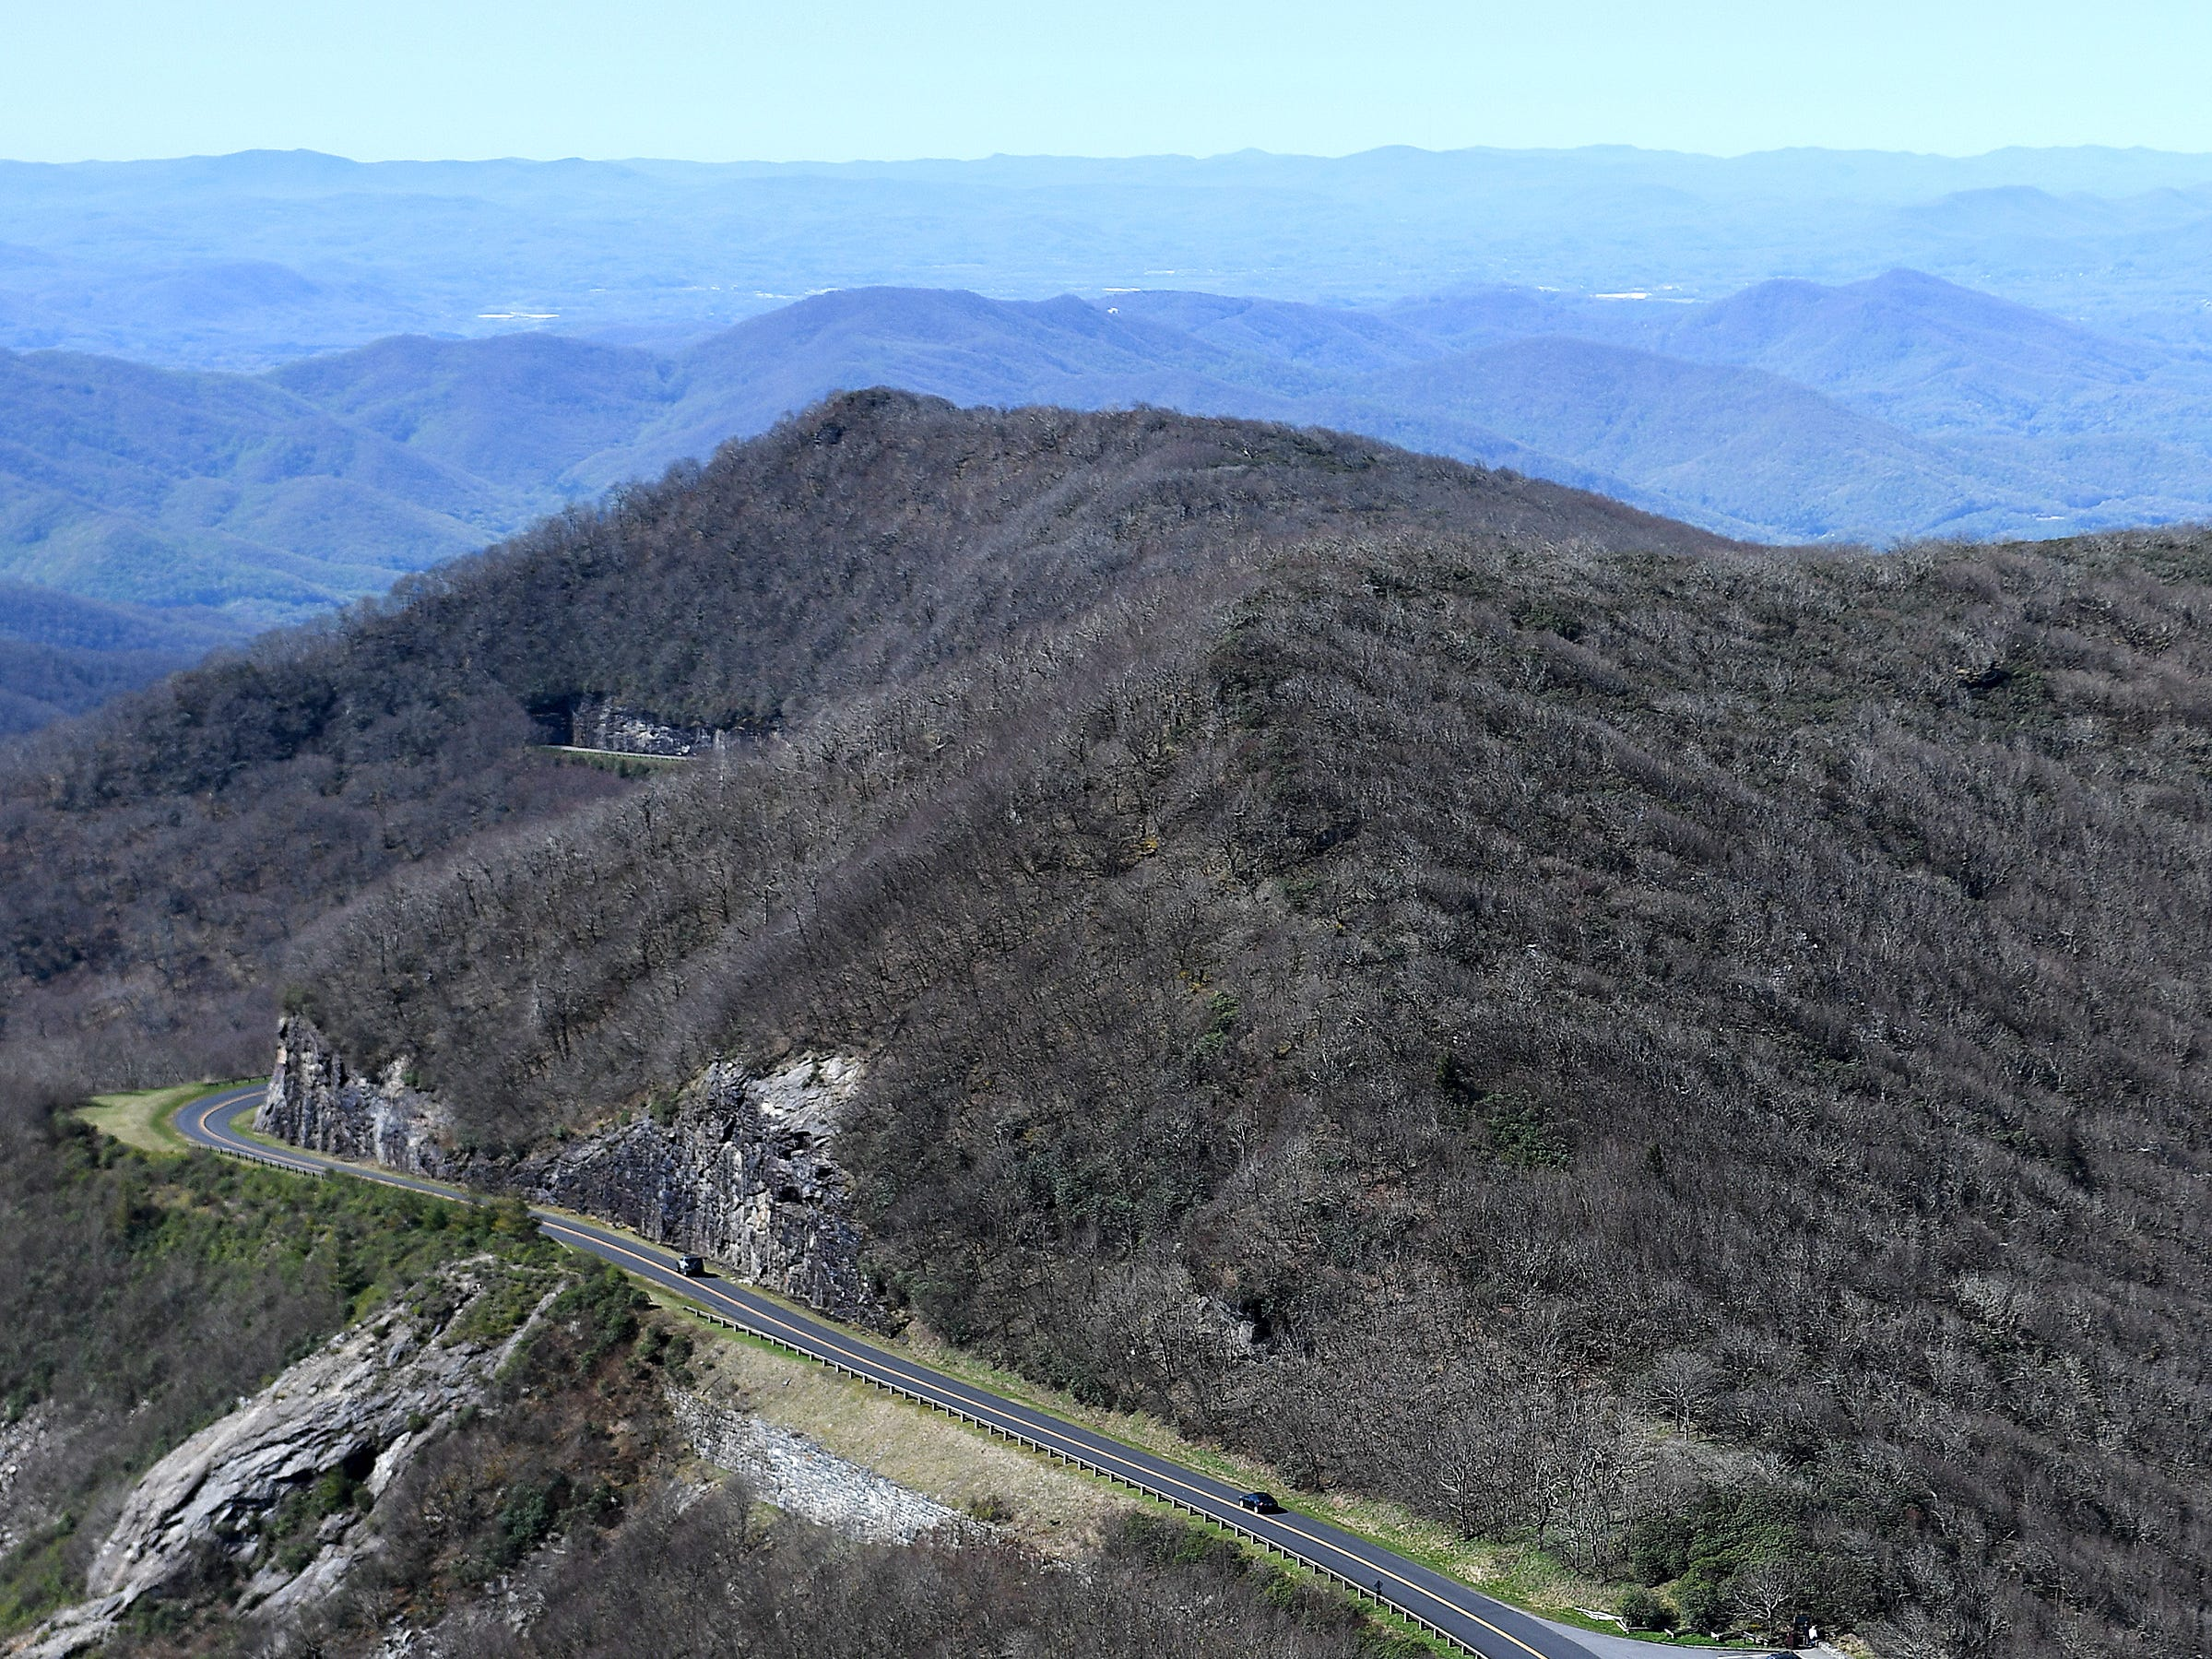 A view from the top of the Craggy Pinnacle trail on the Blue Ridge Parkway on April 22, 2019. Visitors are legally not allowed to cross the stone walls of the platform for safety and the survival of the fragile plants that grow beyond them.